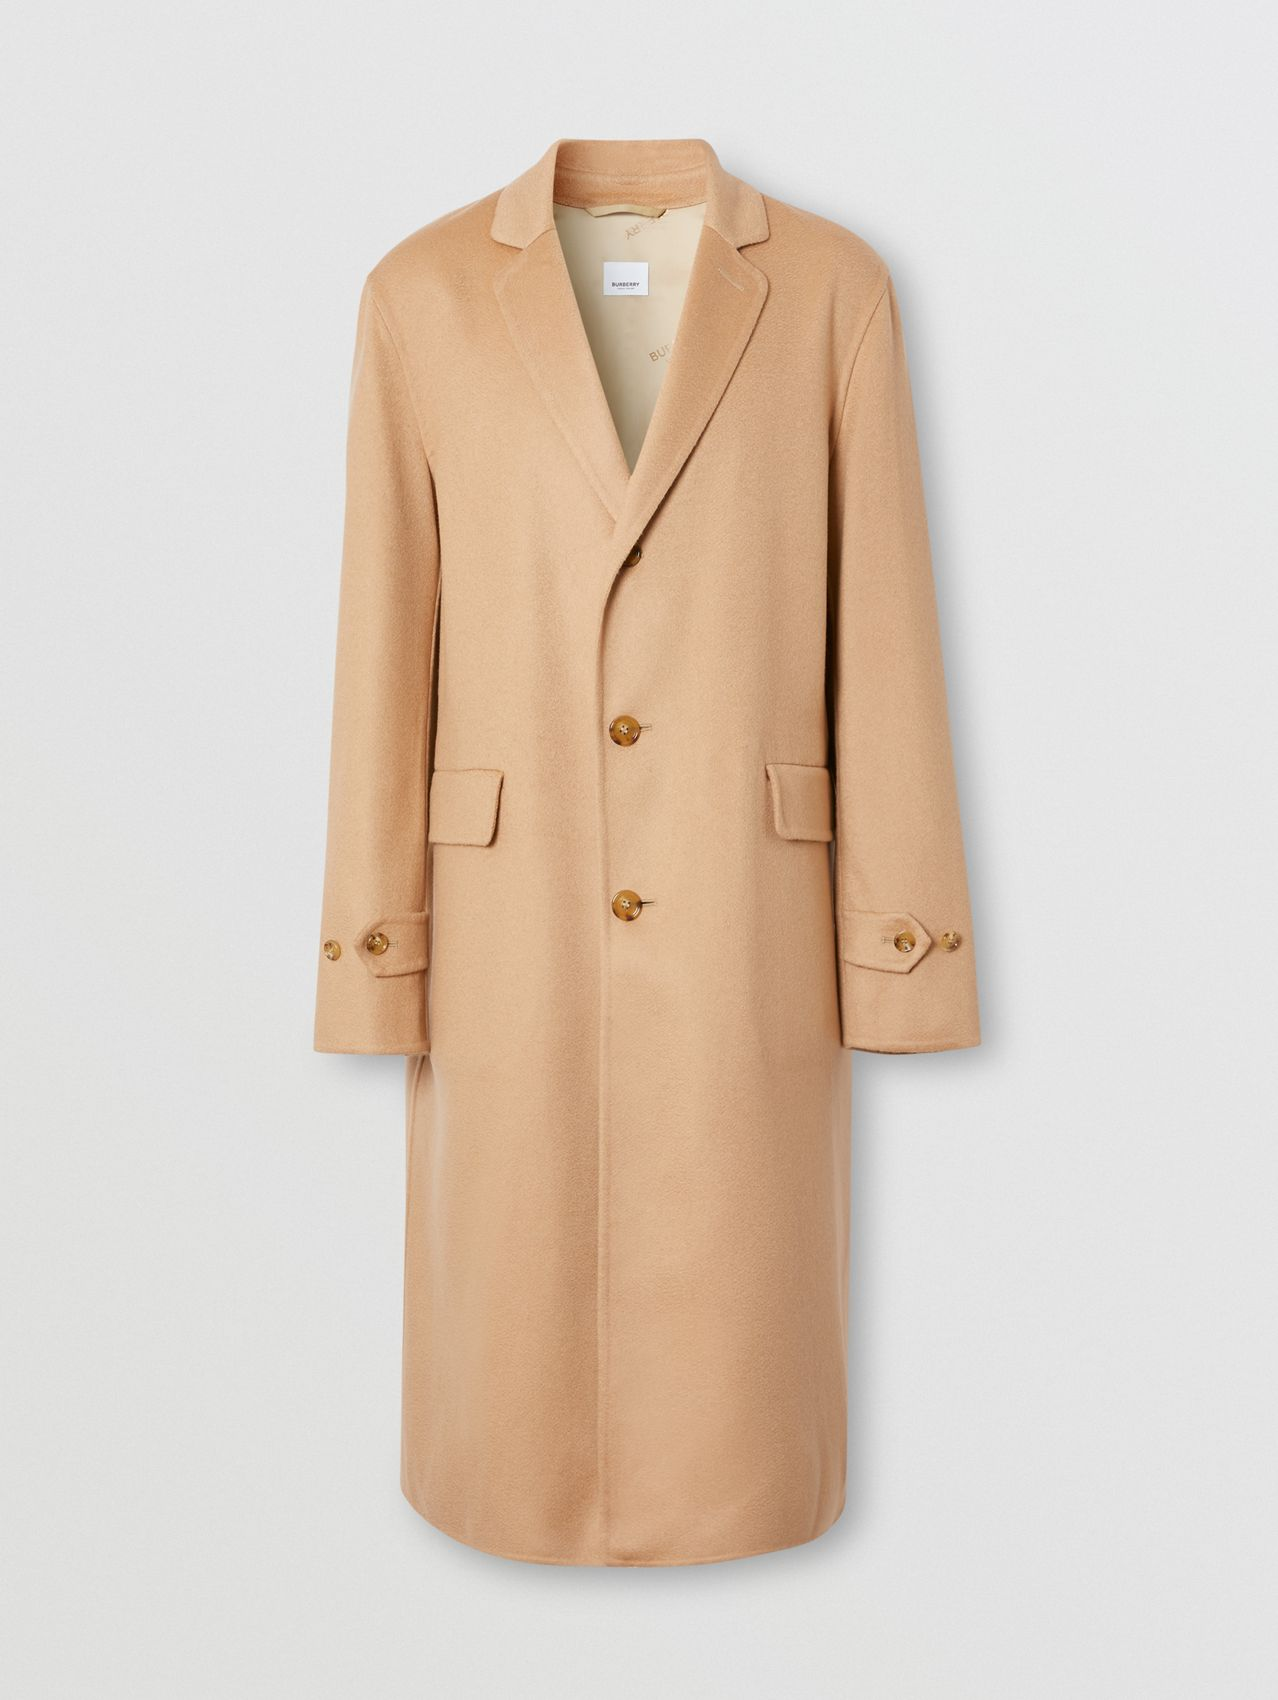 Double-faced Regenerated Cashmere Lab Coat in Camel